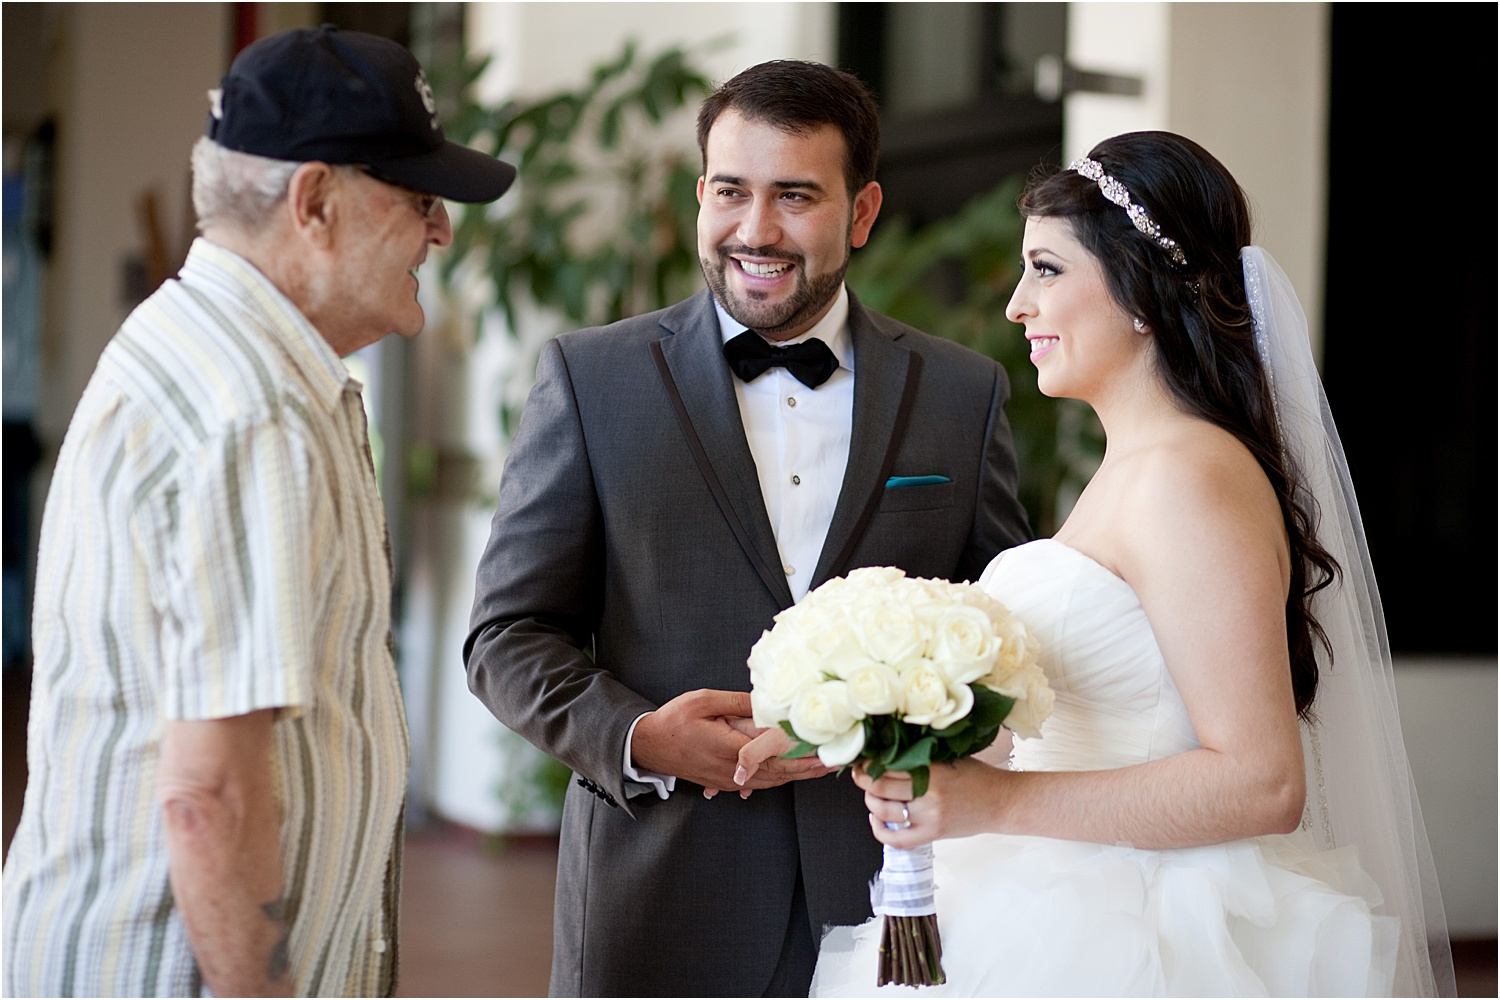 Image: Capture all moments. This man was telling the bride that she was the most beautiful bride he...